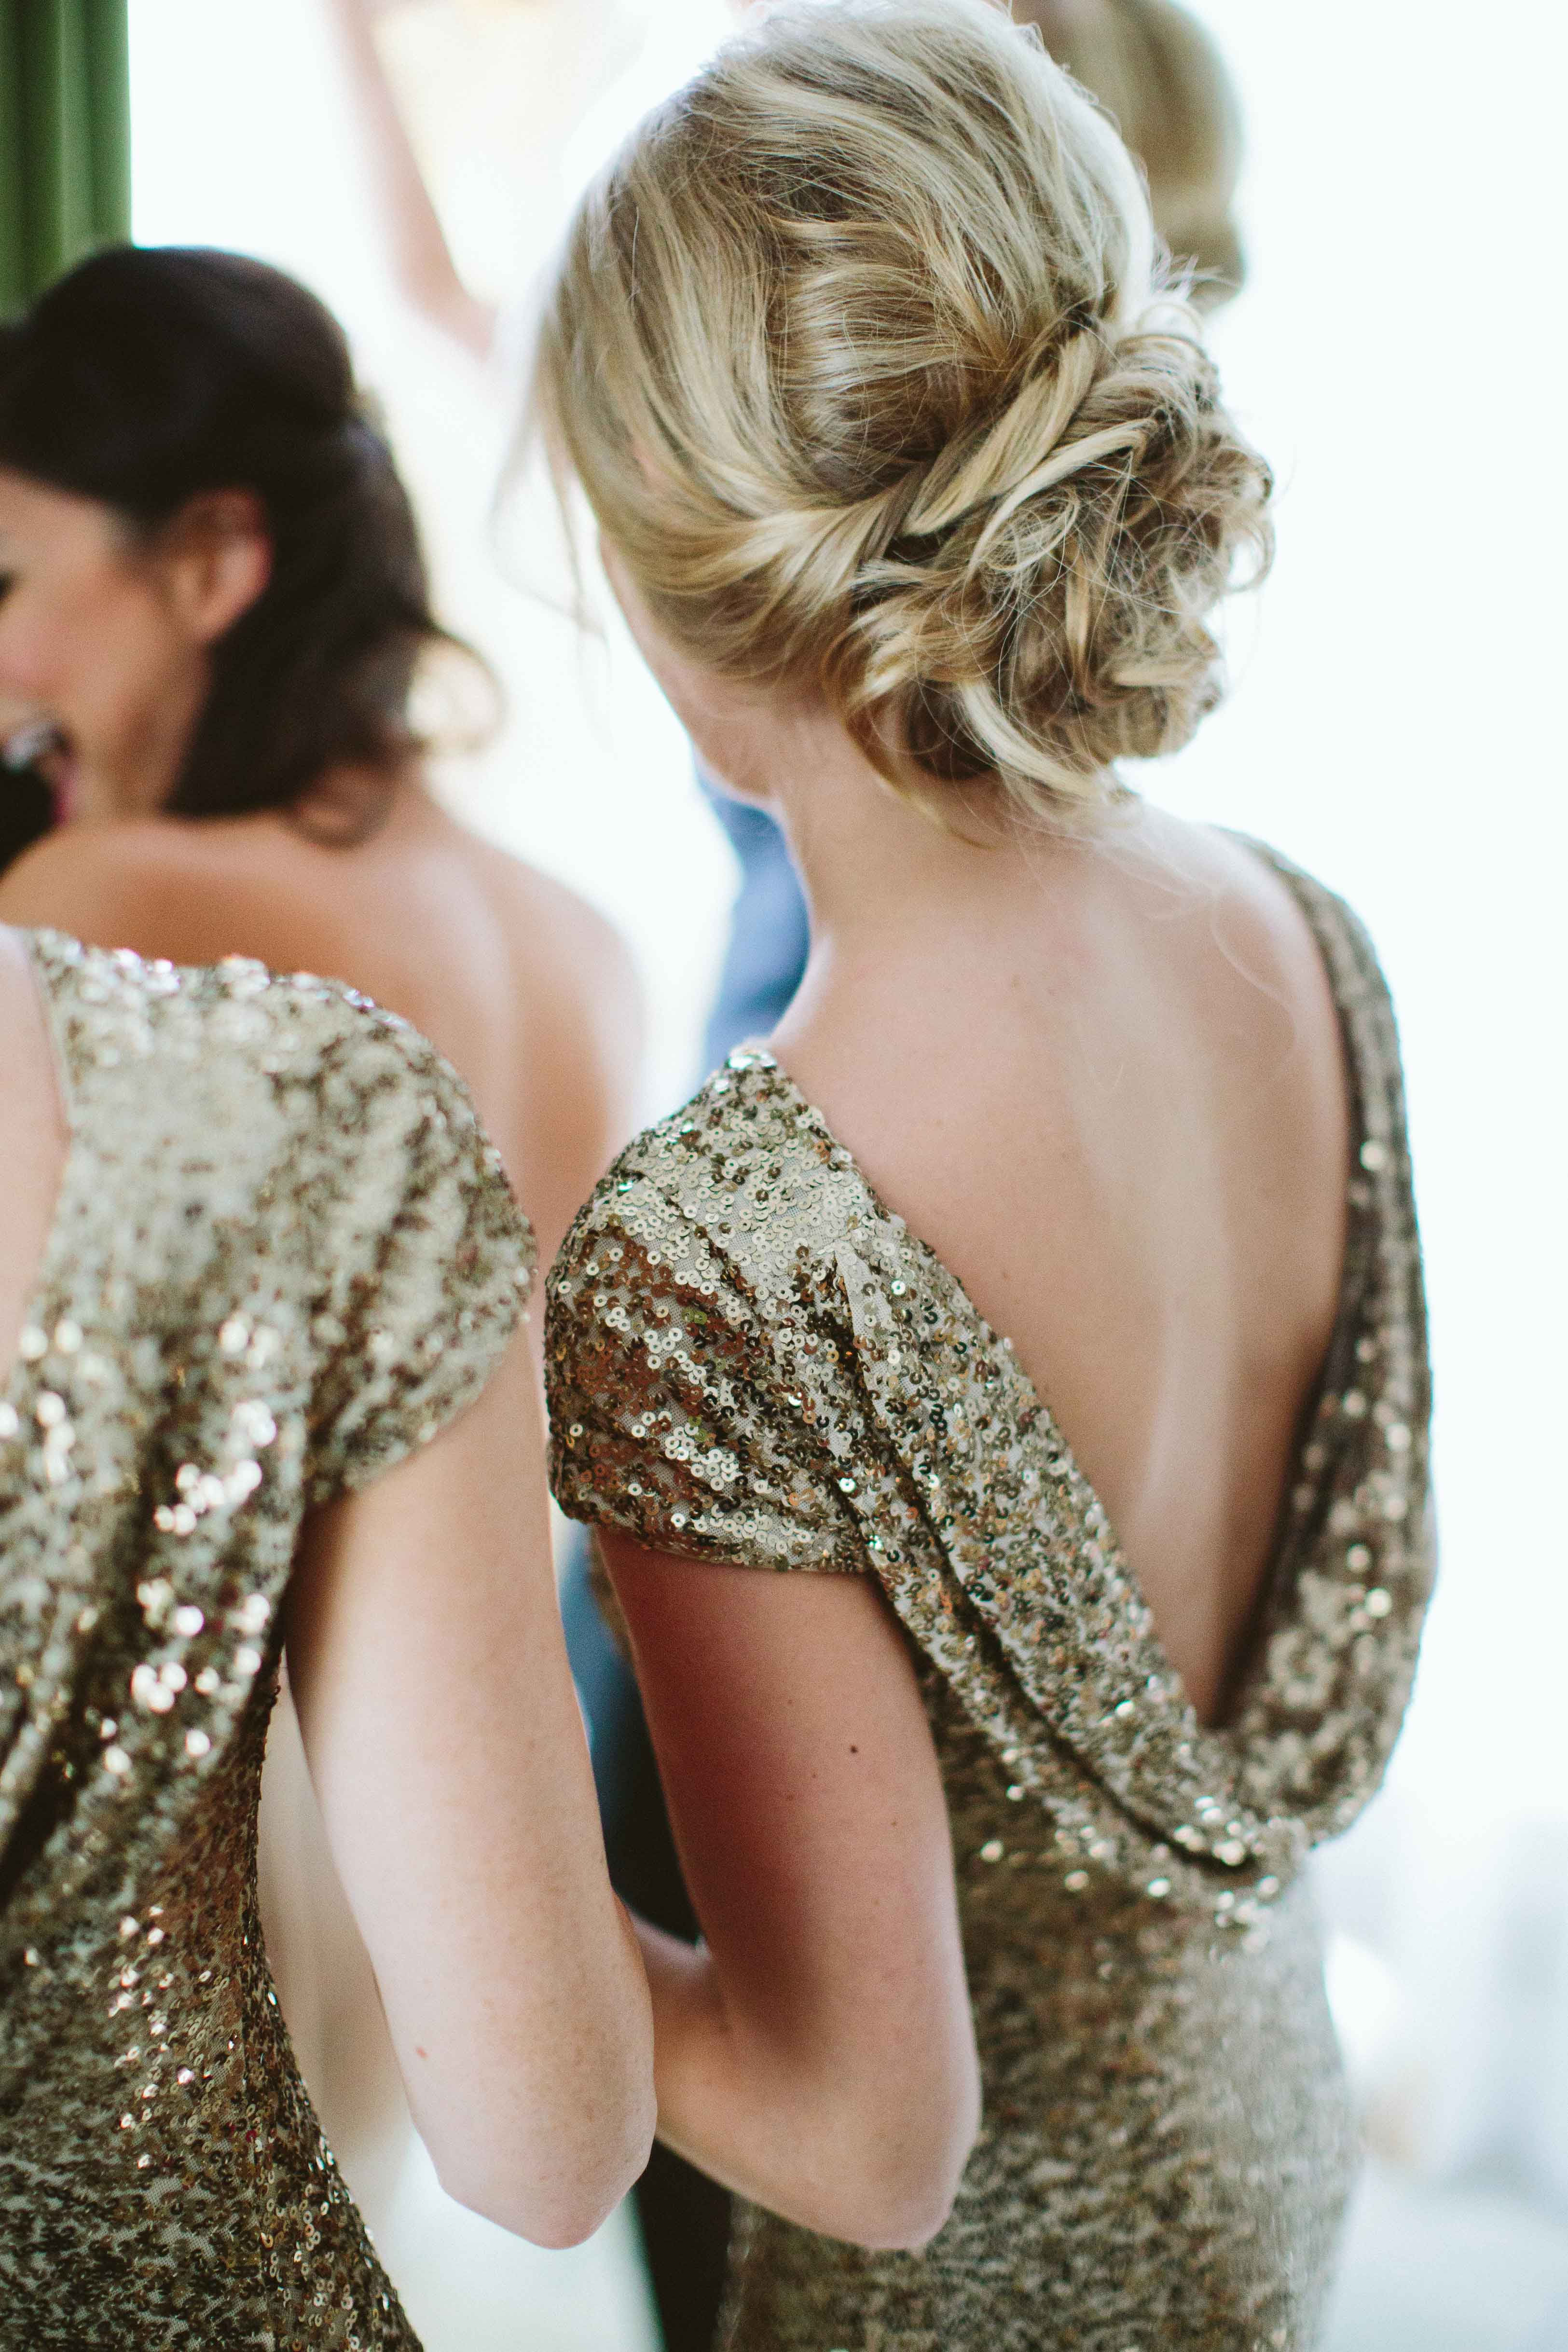 bridesmaid dresses in gold sequin design new year's eve wedding ideas